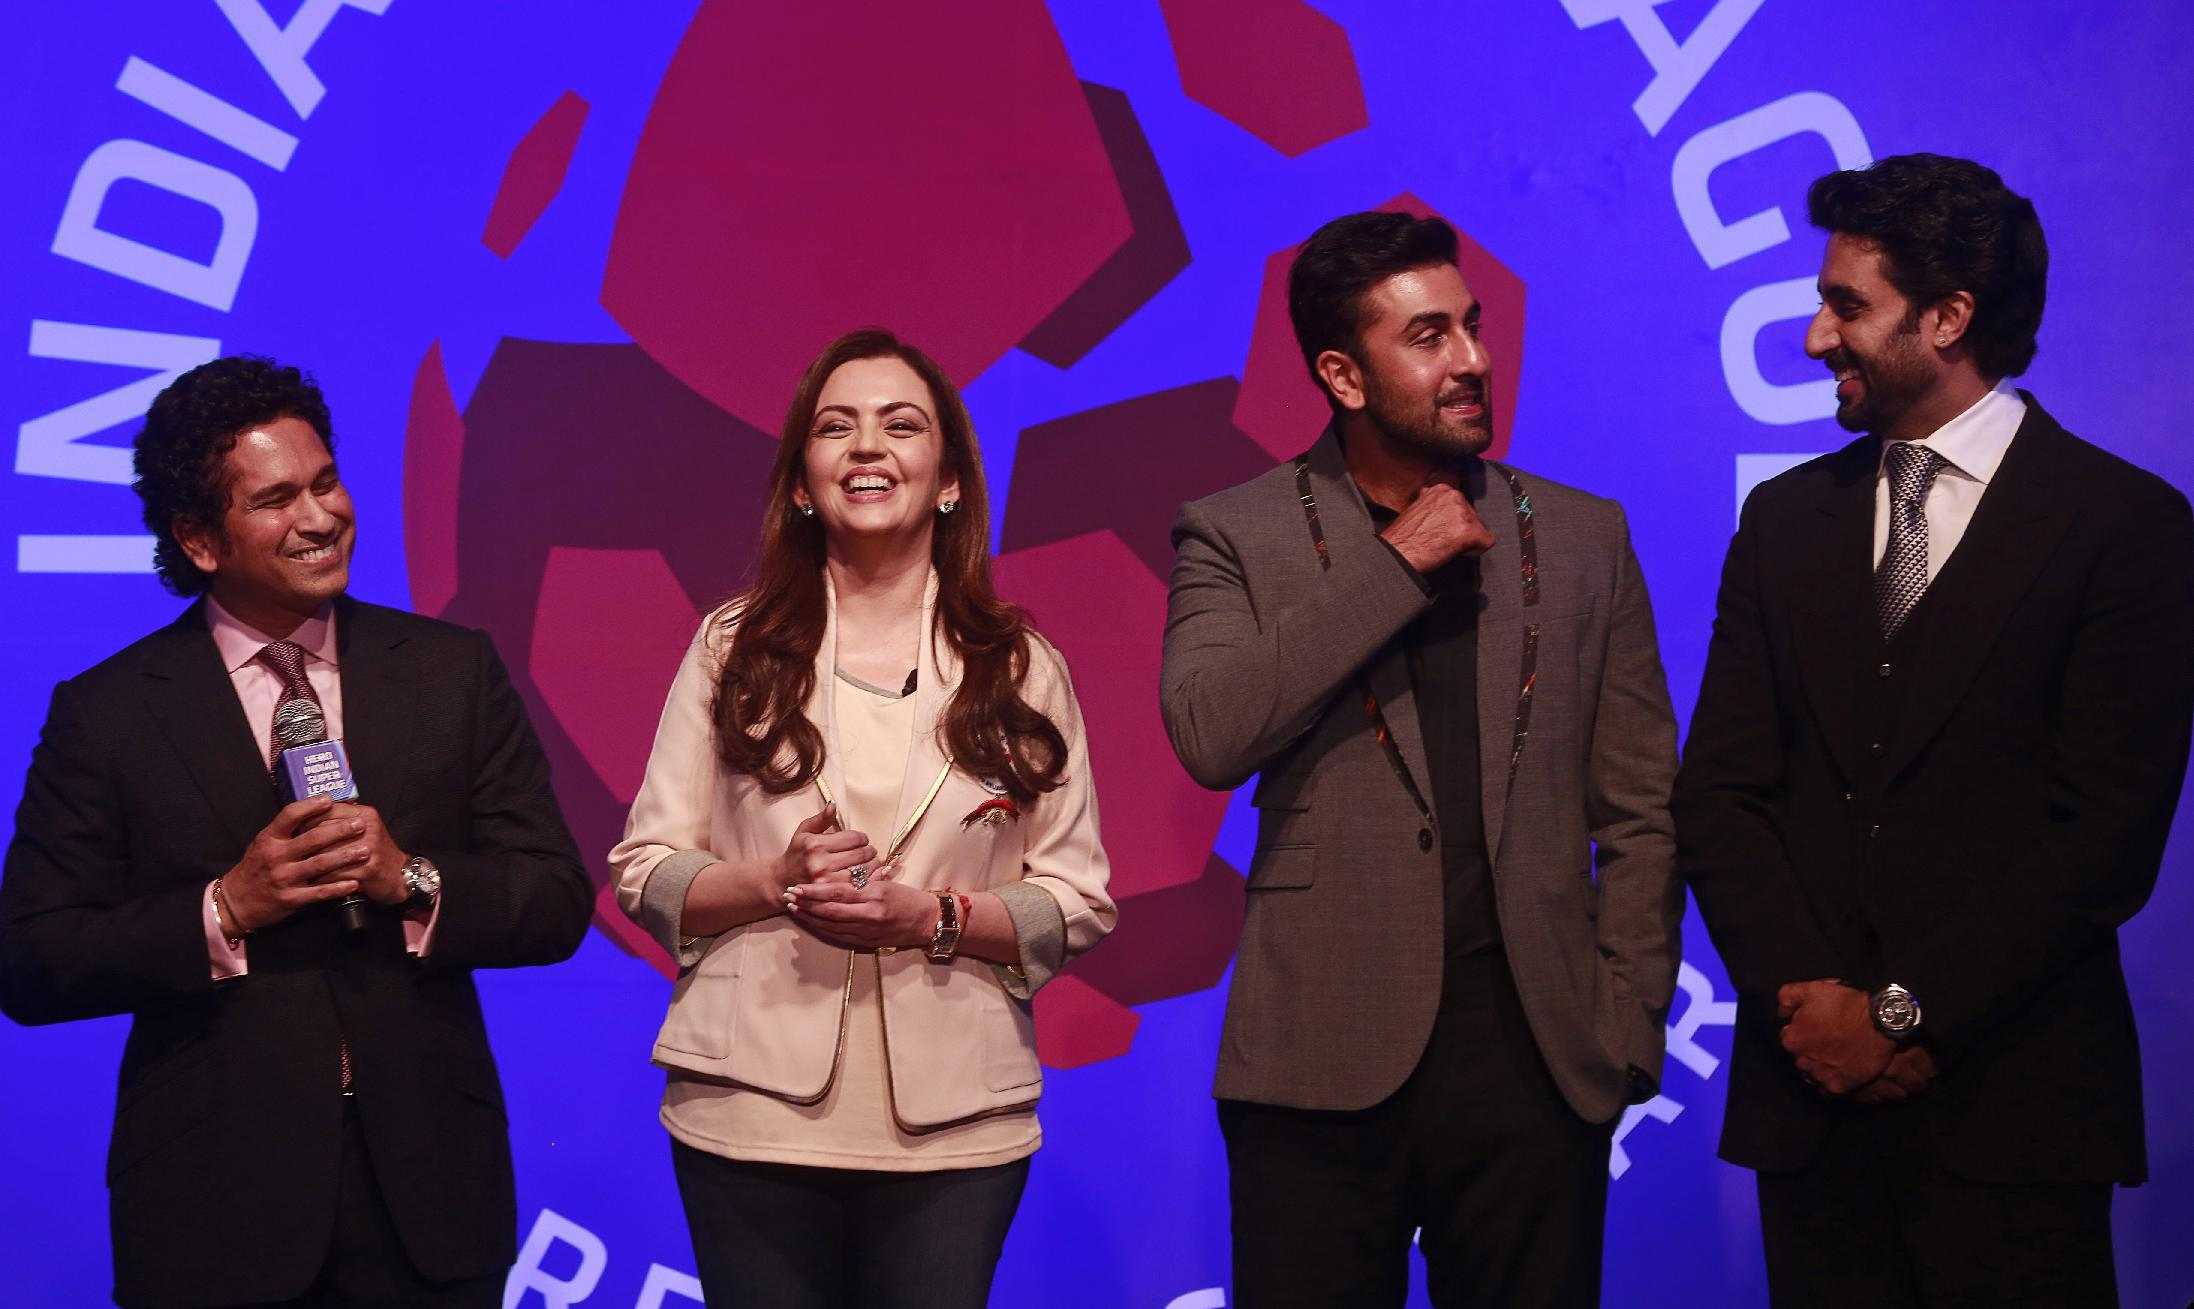 Reliance Foundation Chairman Nita Ambani, second left, stands with former Indian cricketer and co-owner of Kerala Blasters Football Club Sachin Tendulkar, left, Bollywood actor and co-owner of Mumbai City FC Ranbir Kapoor, second right, and Bollywood actor and co-owner of Team Chennai Abhishek Bachchan during the official launch of the Indian Super League (ISL) in Mumbai, India, Thursday, Aug. 28, 2014. The ISL, an initiative to popularize soccer in the country, is scheduled to begin Oct. 12